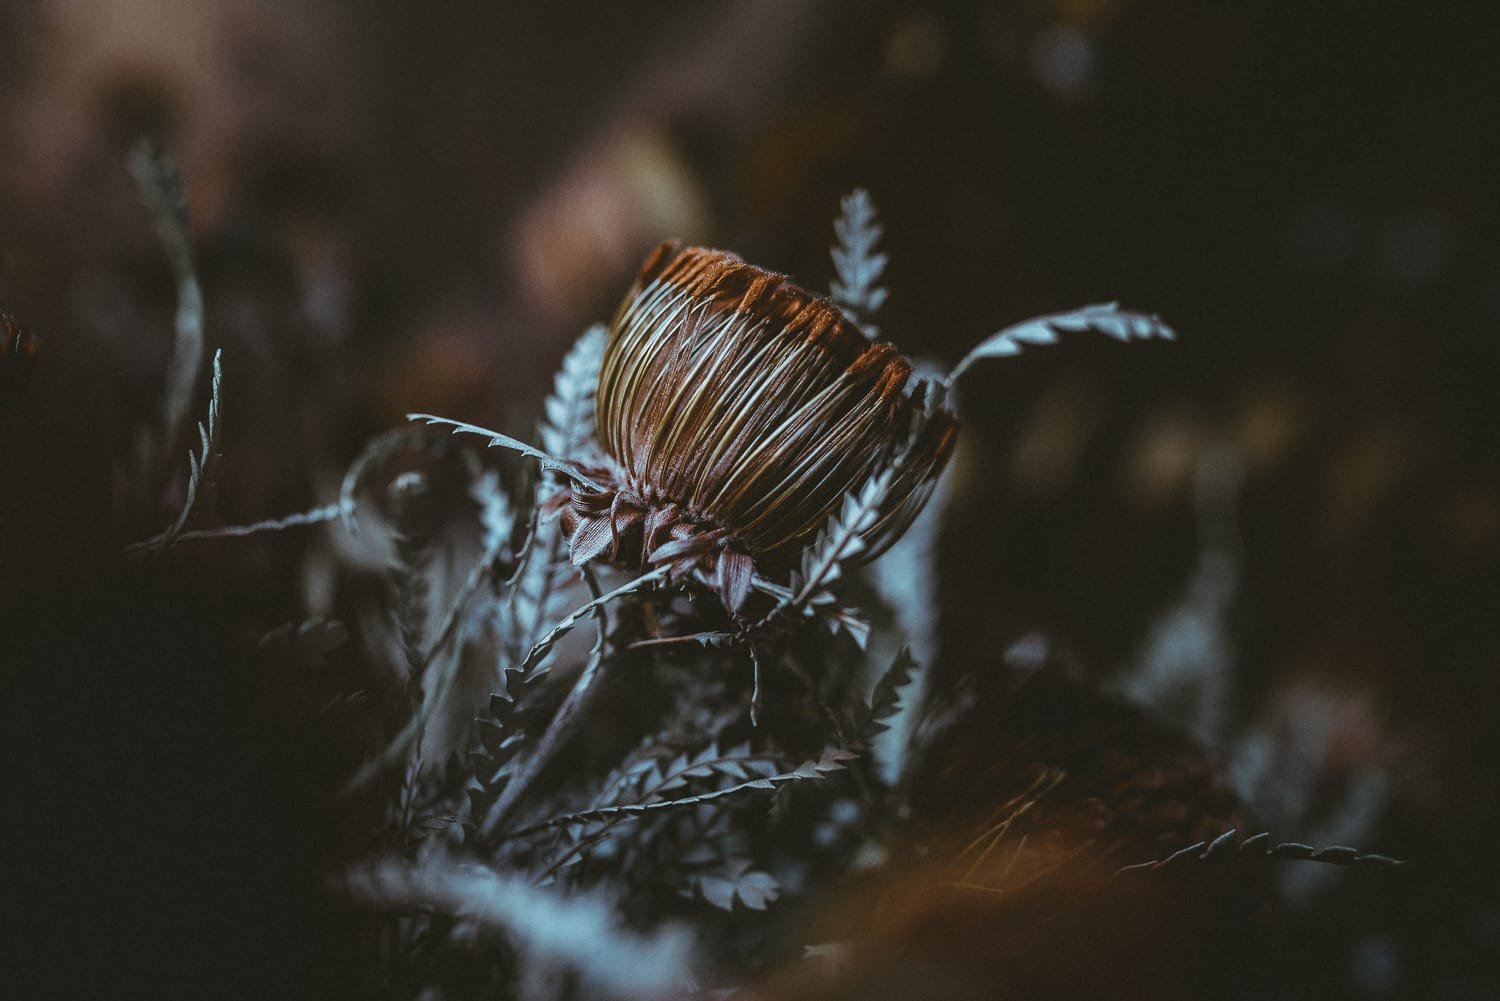 a dried flower in a moody setting